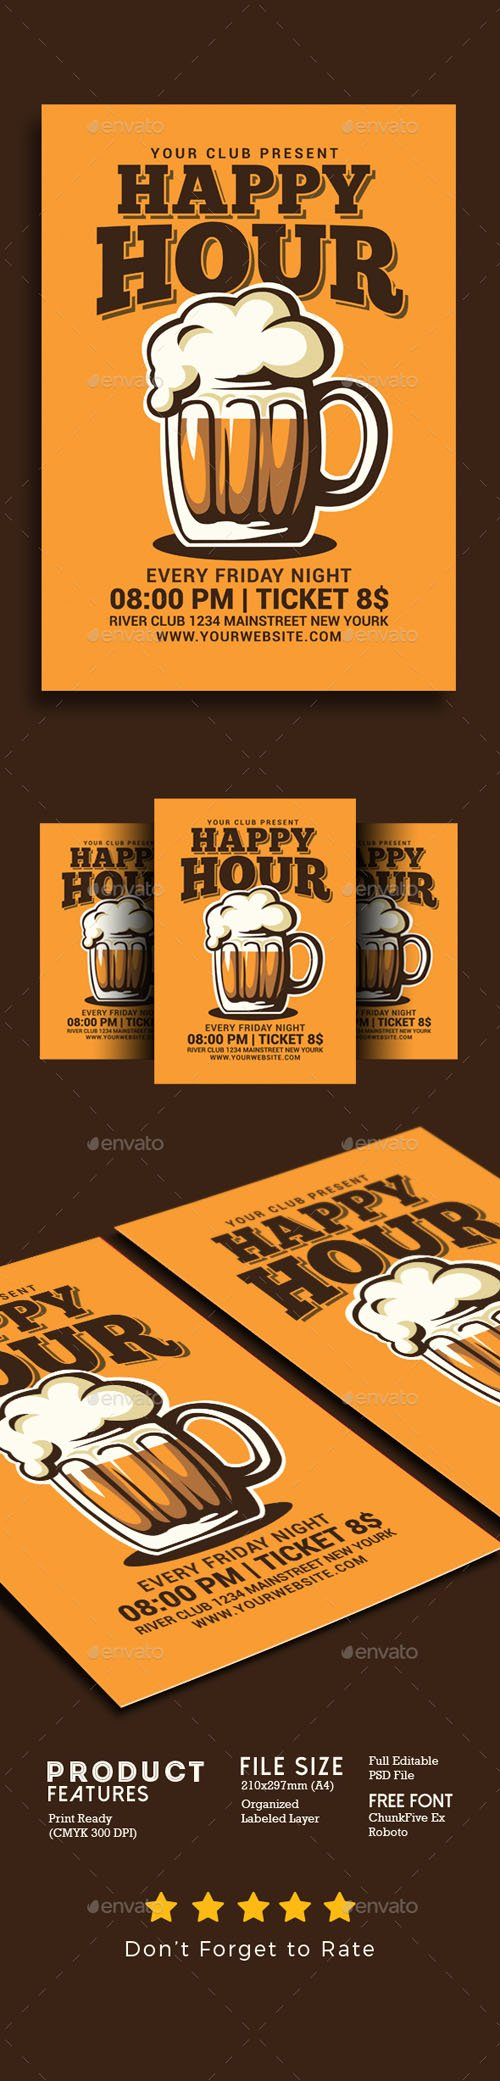 Happy Hour Beer Flyer 20160009